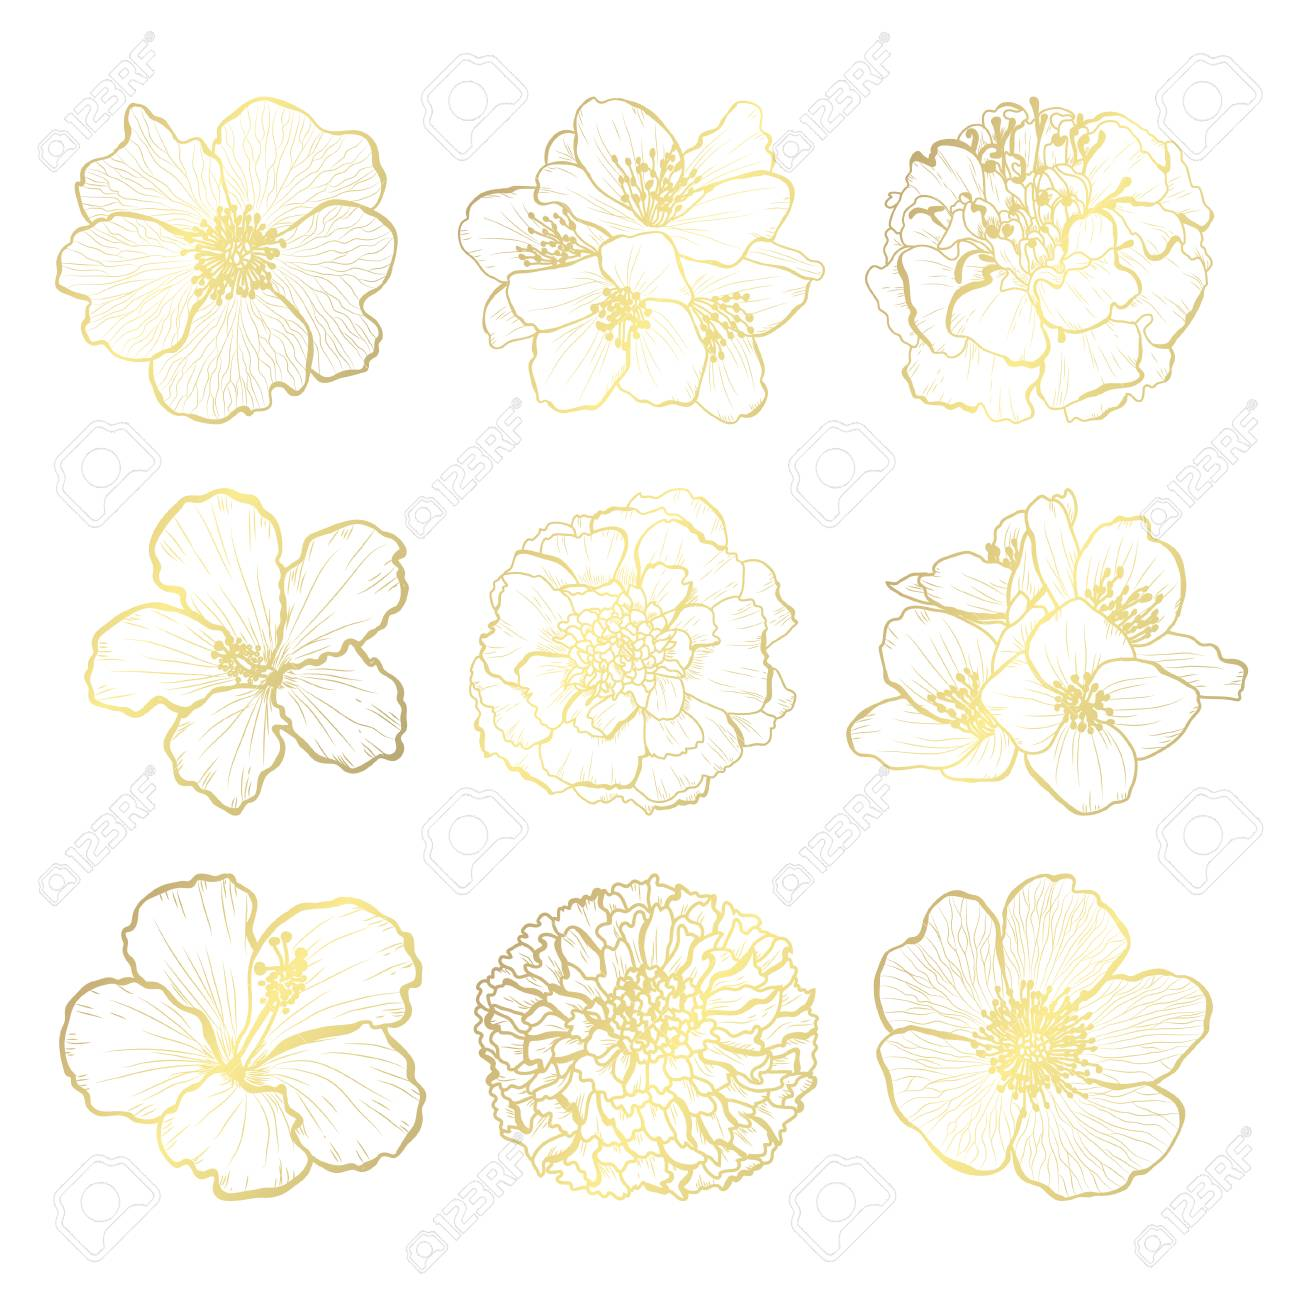 Decorative hand drawn flowers, design elements. Can be used for cards, invitations, banners, posters, print design. Golden flowers - 126472990